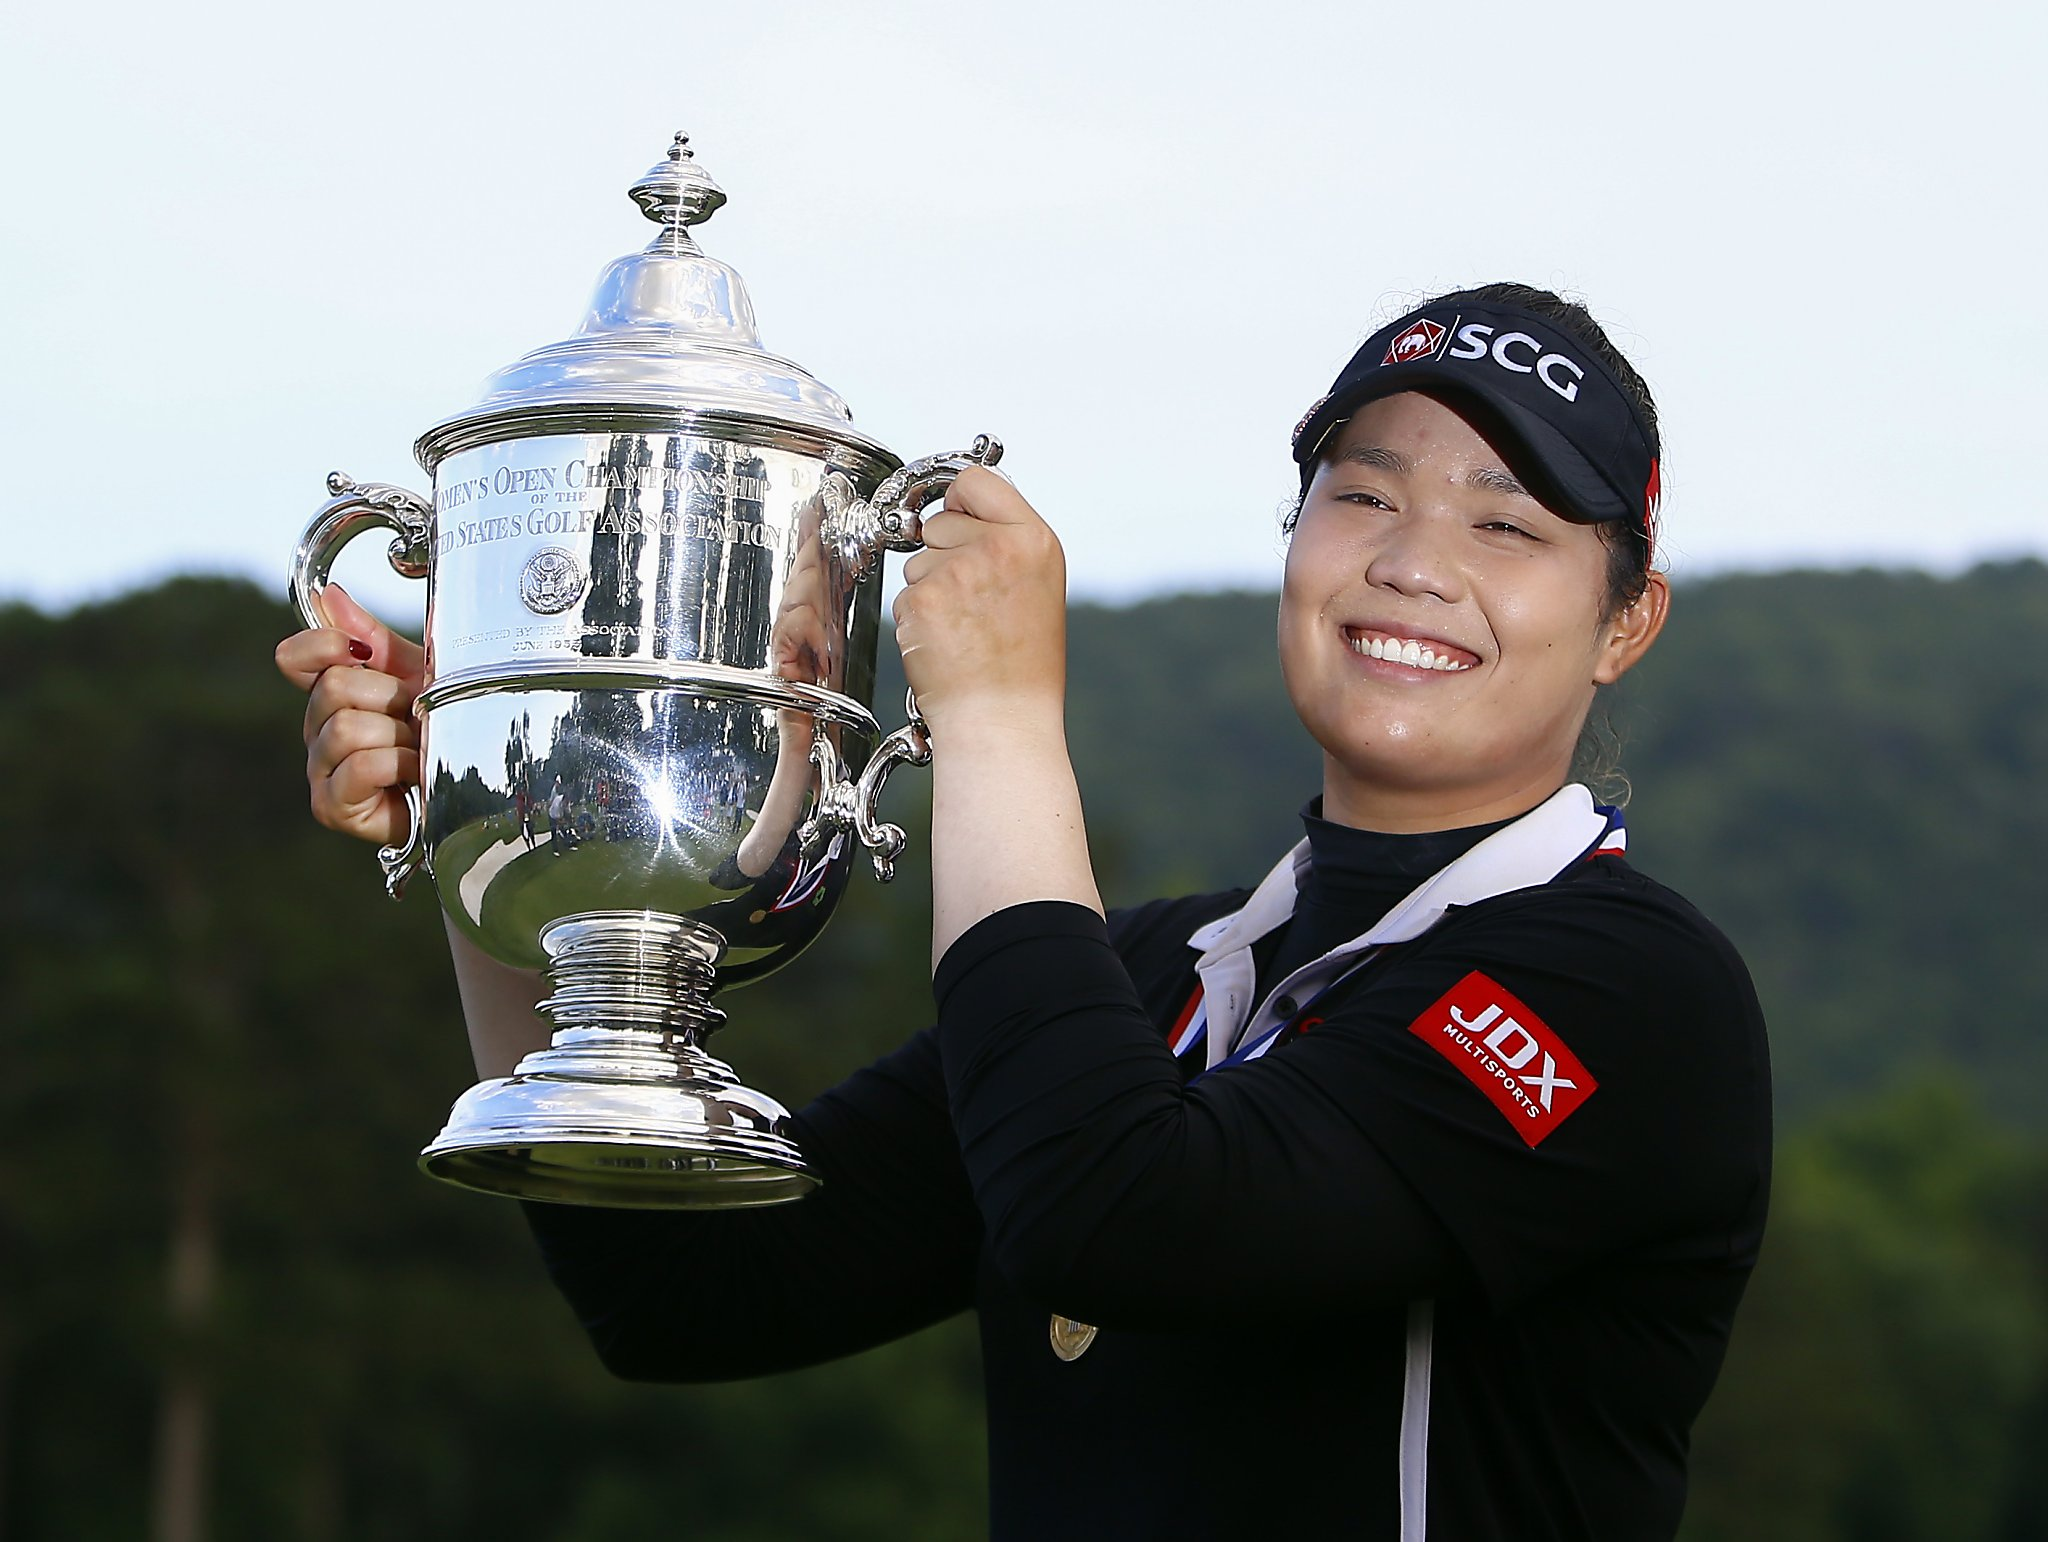 Ariya Jutanugarn wins US Women's Open on fourth playoff hole